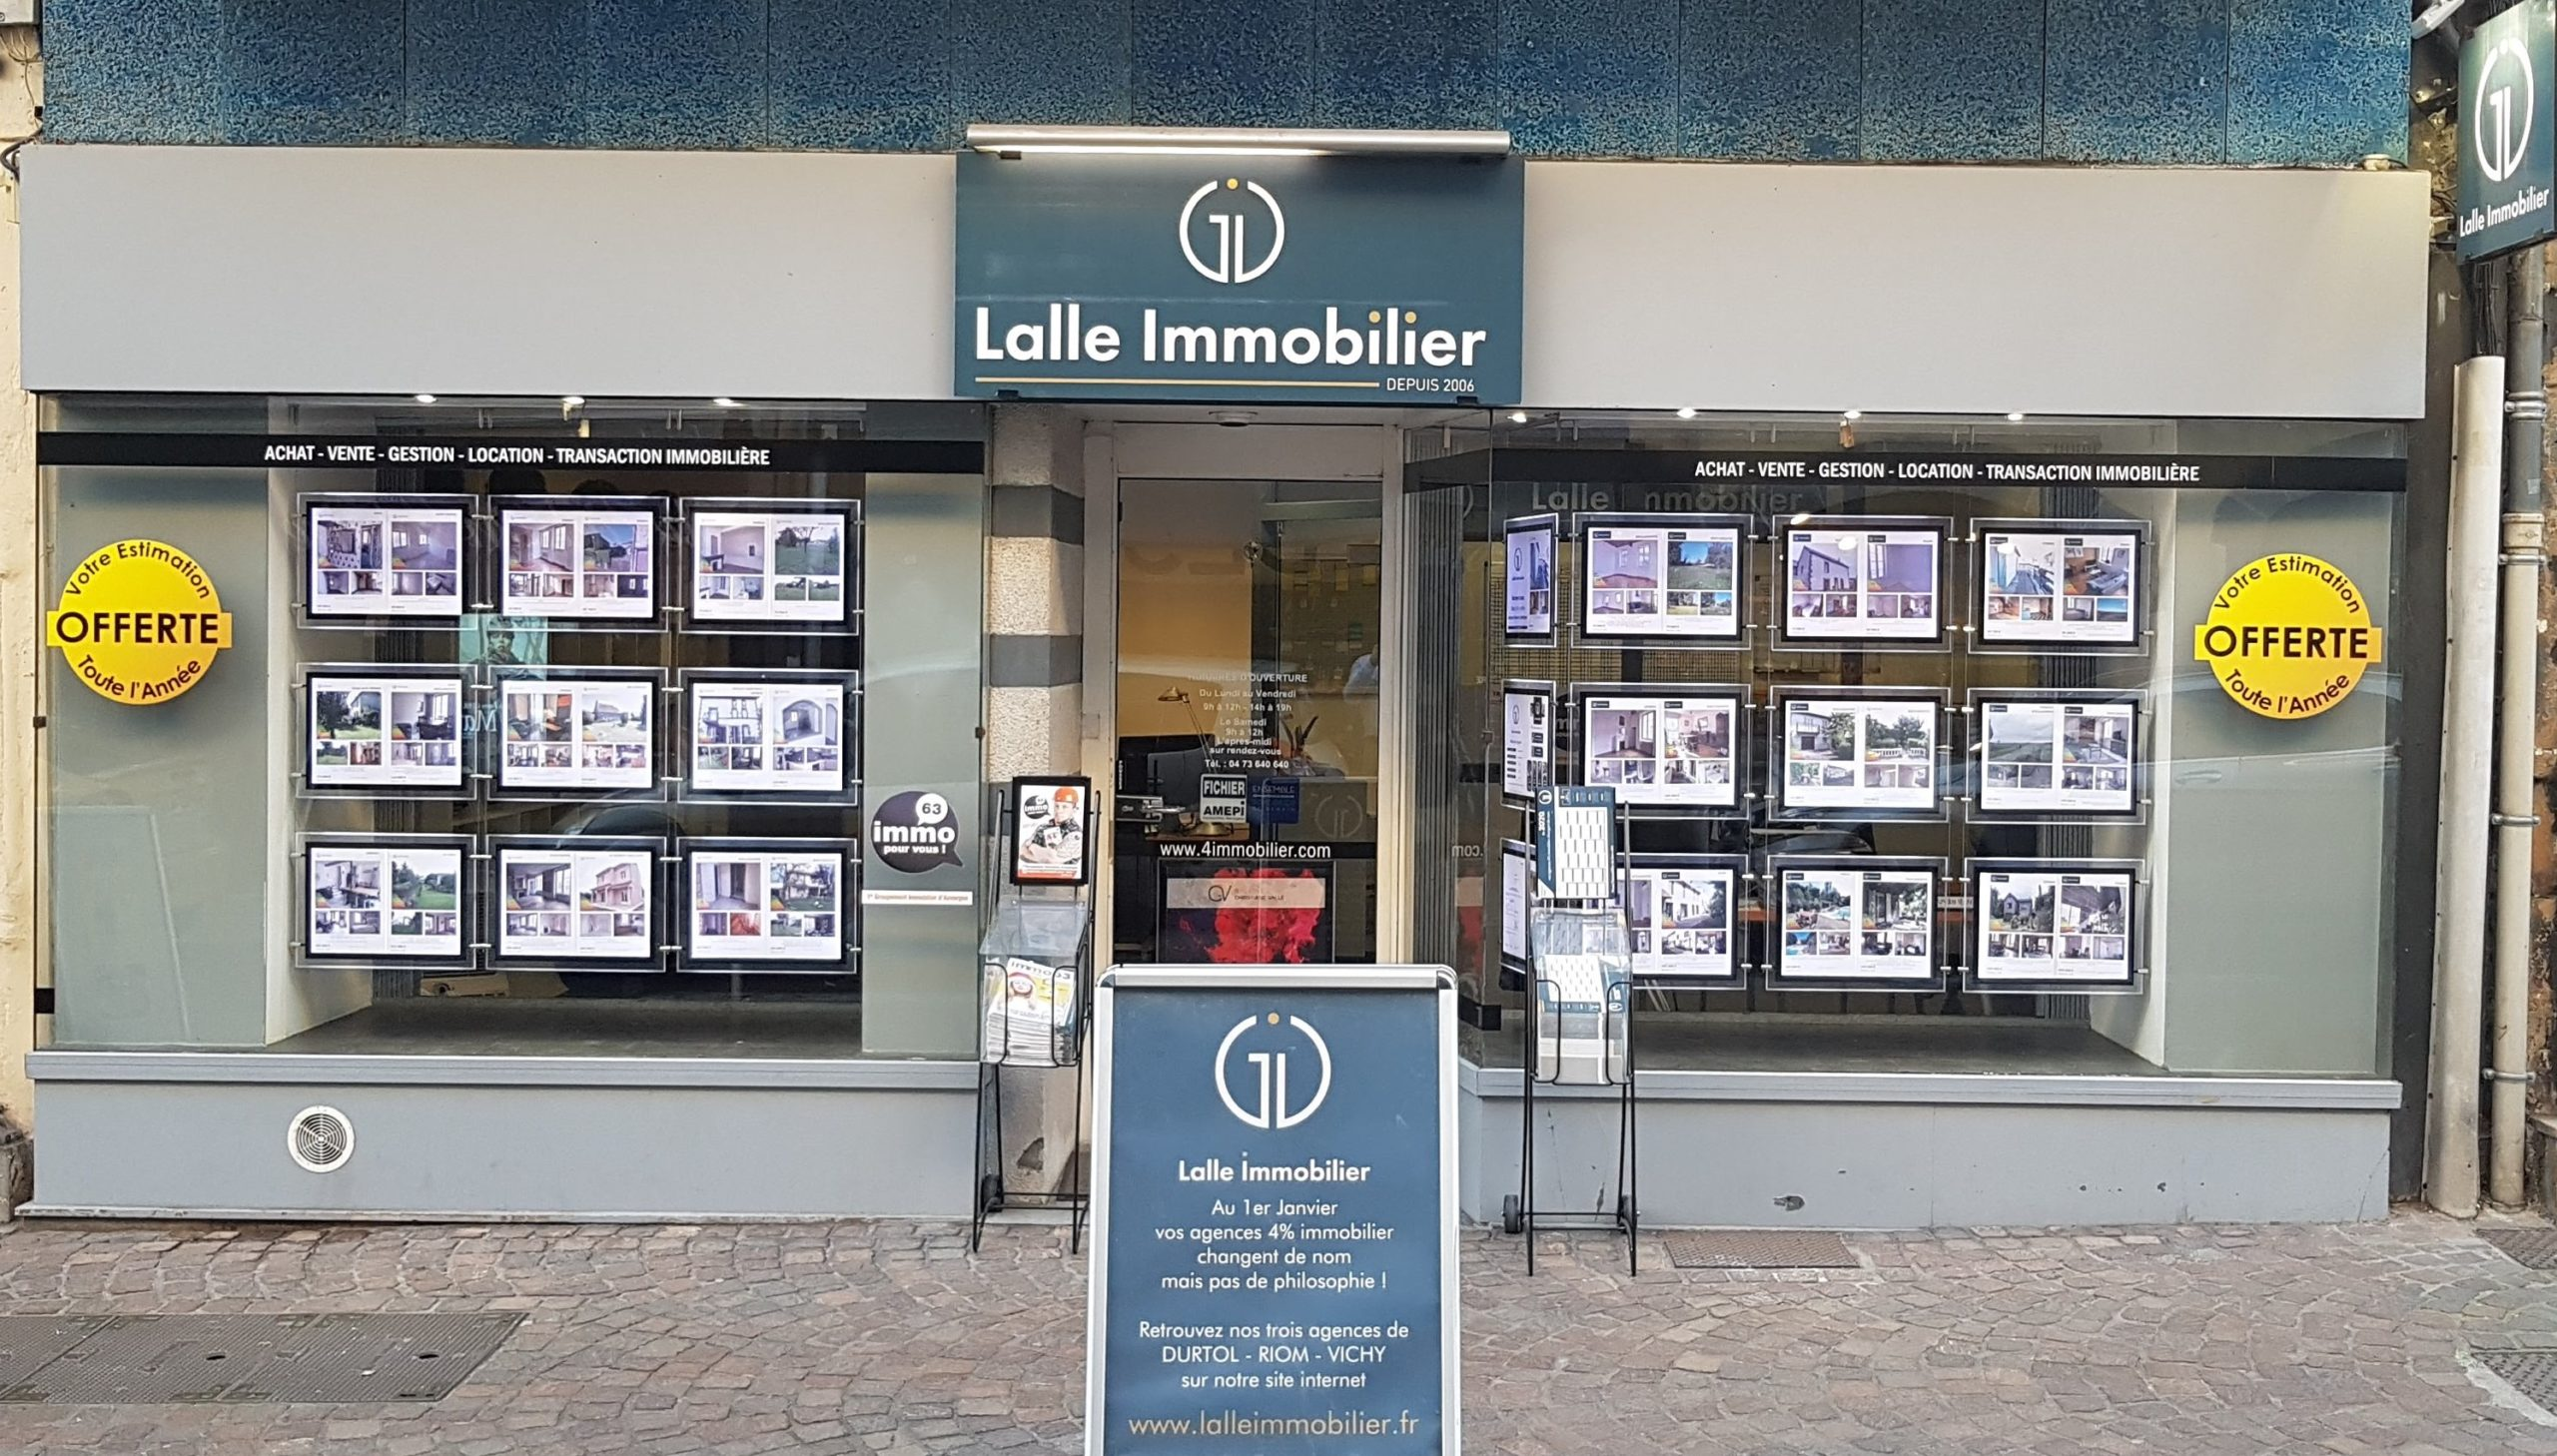 LALLE IMMOBILIER